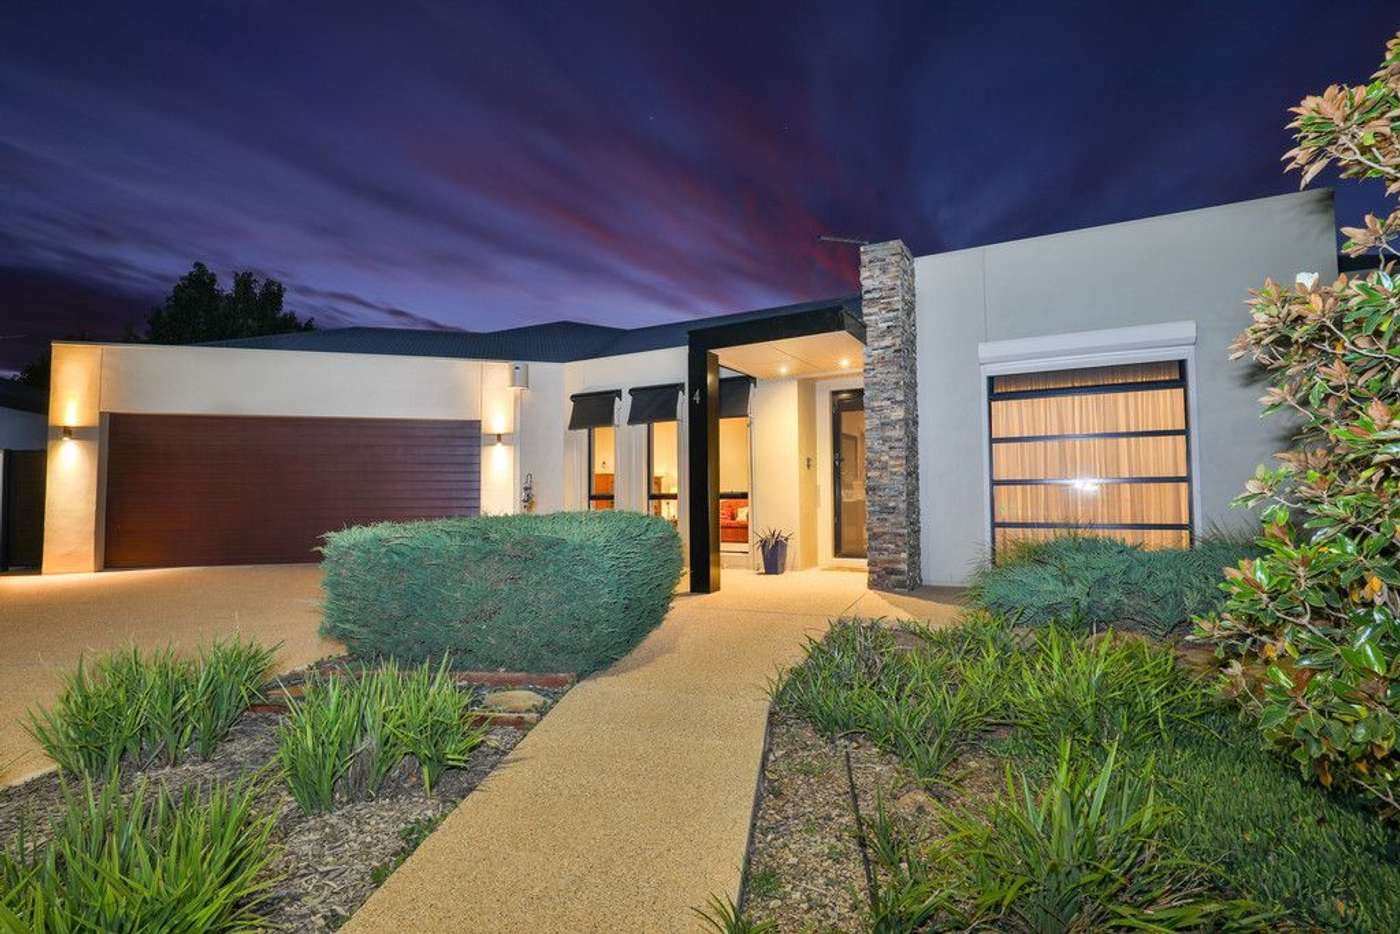 Main view of Homely house listing, 4 Timansi Court, Mildura VIC 3500